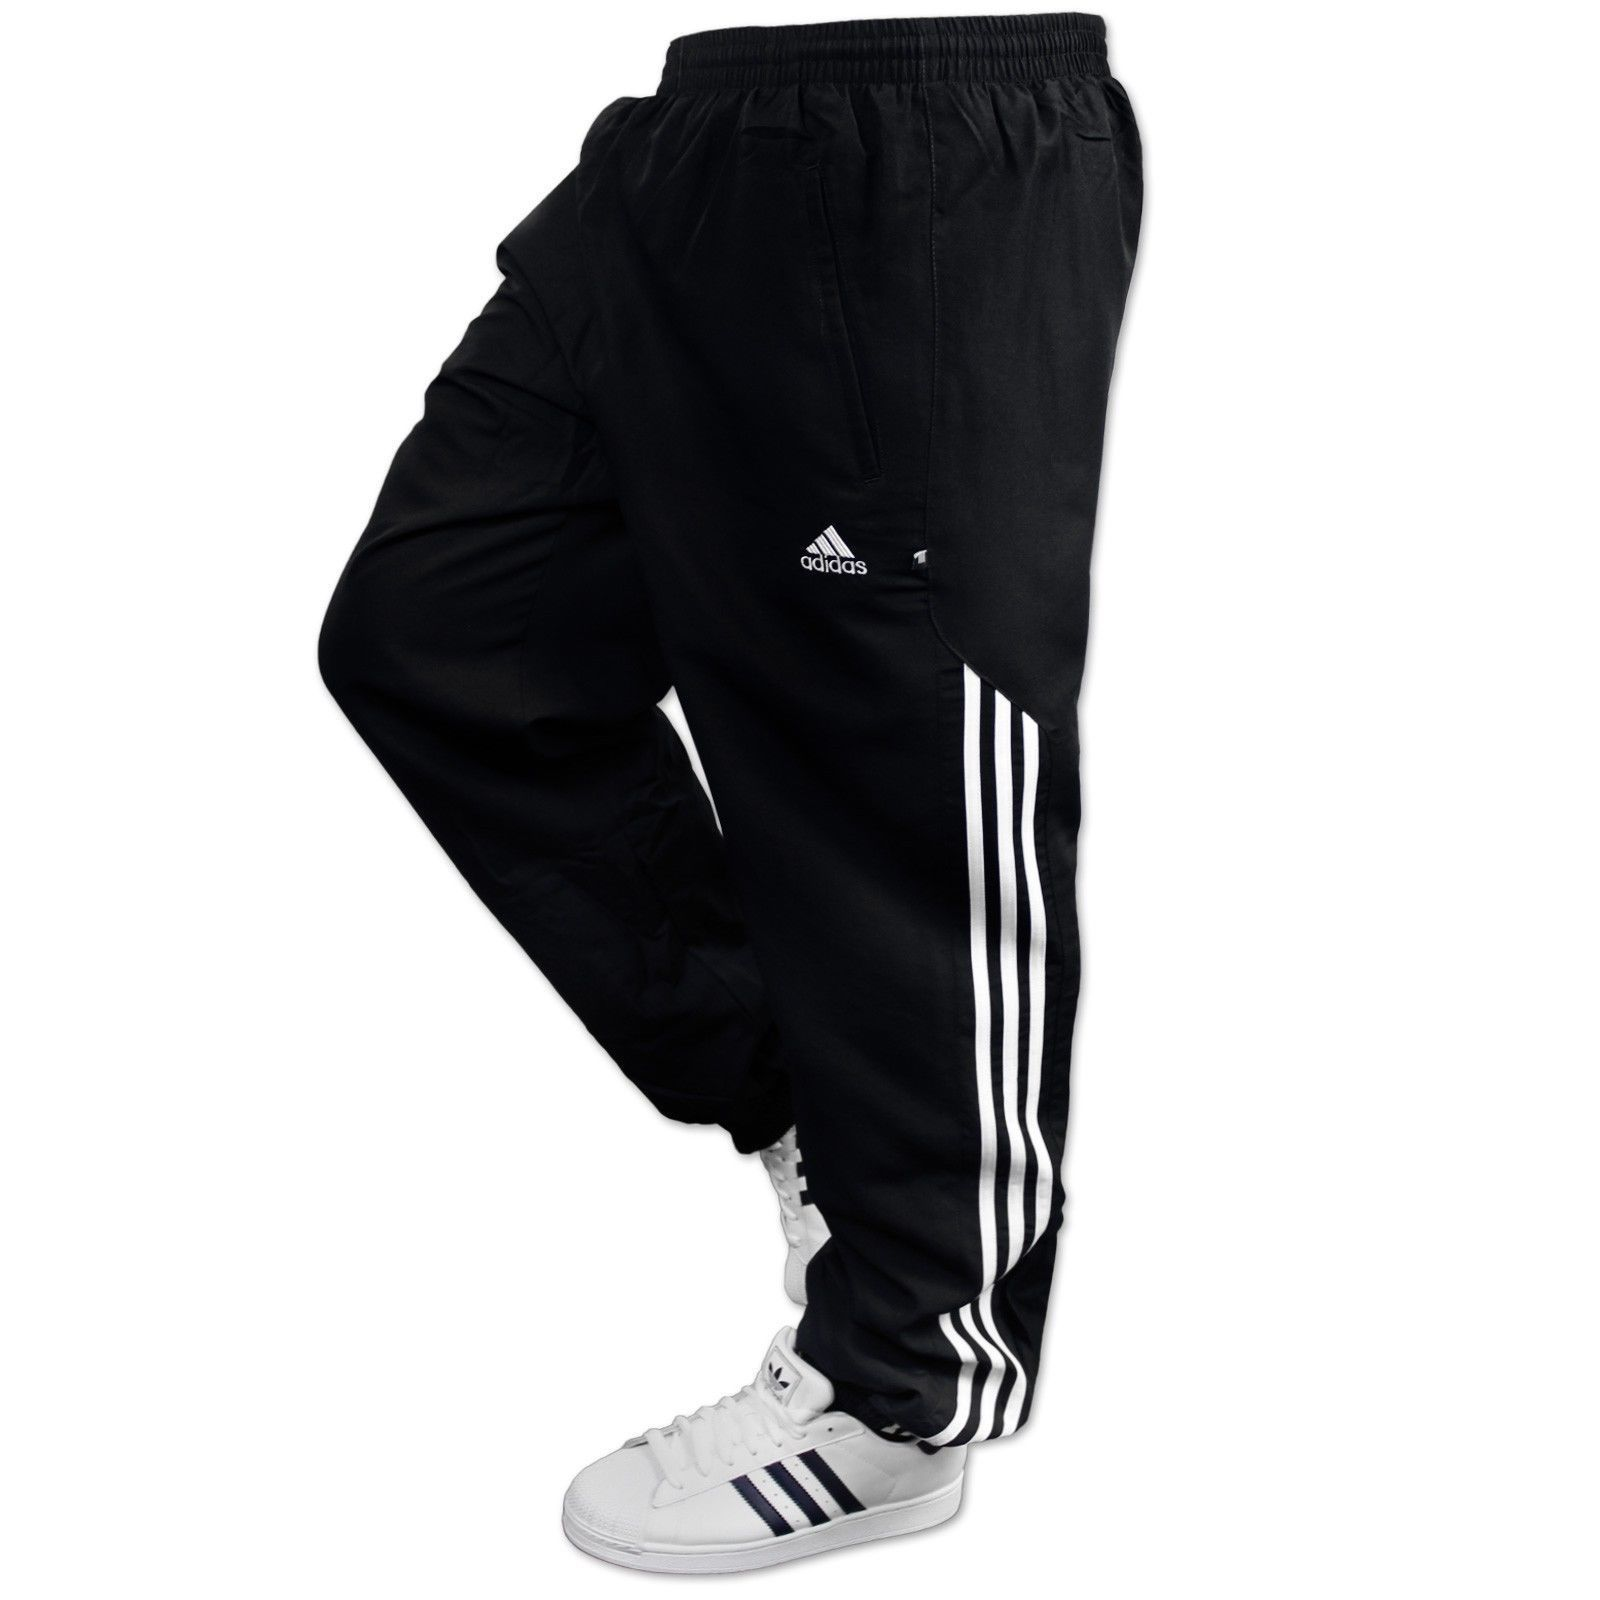 Find your adidas Men - Black - Track Suits - Pants at oraplanrans.tk All styles and colors available in the official adidas online store.